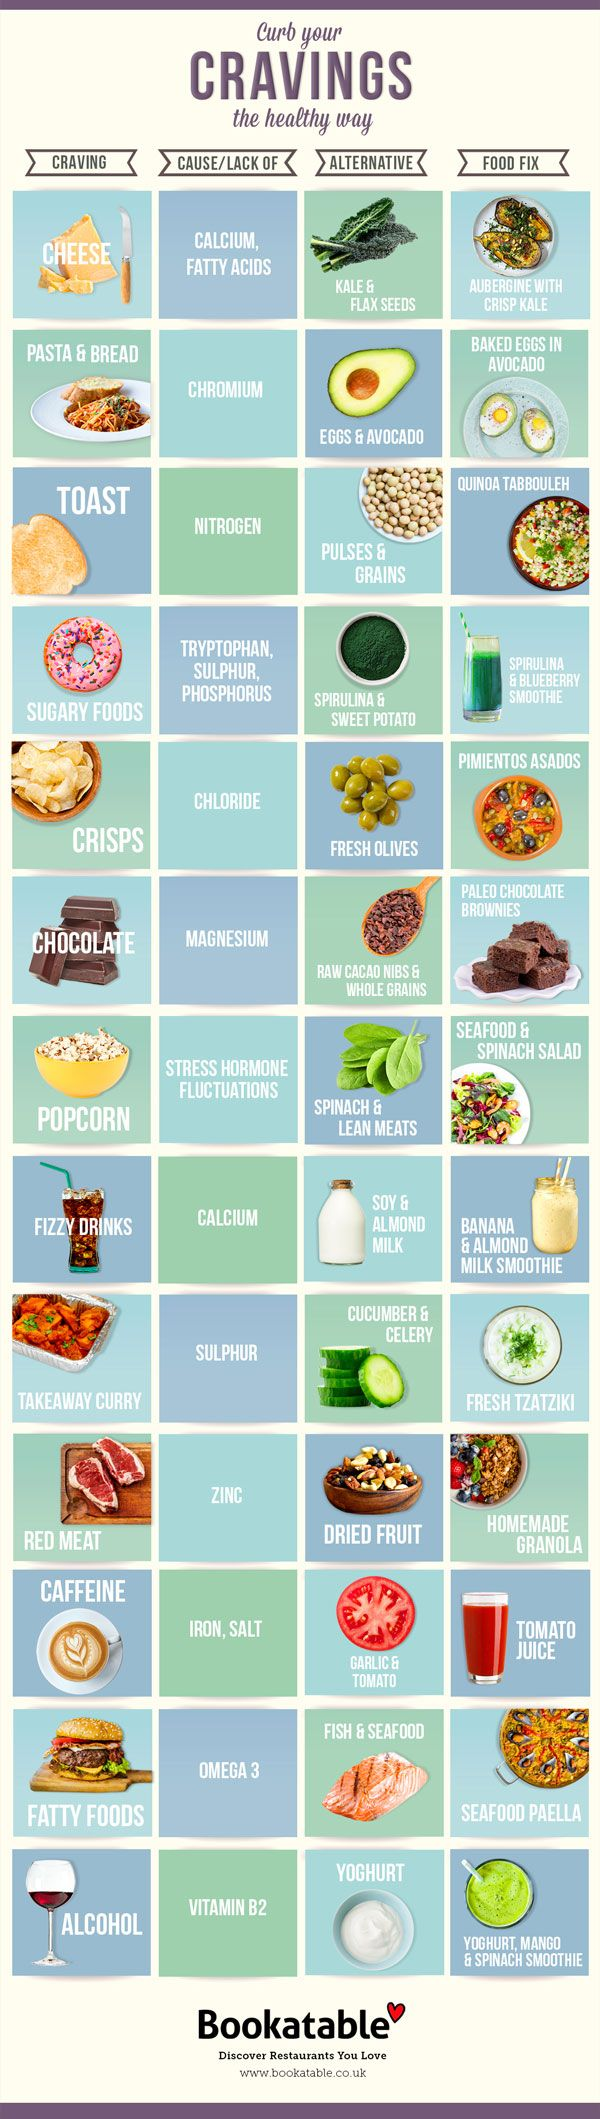 Going on a strict diet can be challenging on its own. Certain food cravings might make it harder to stay on the right track. This infographic from Bookatable shows how you can combat various food cravings: